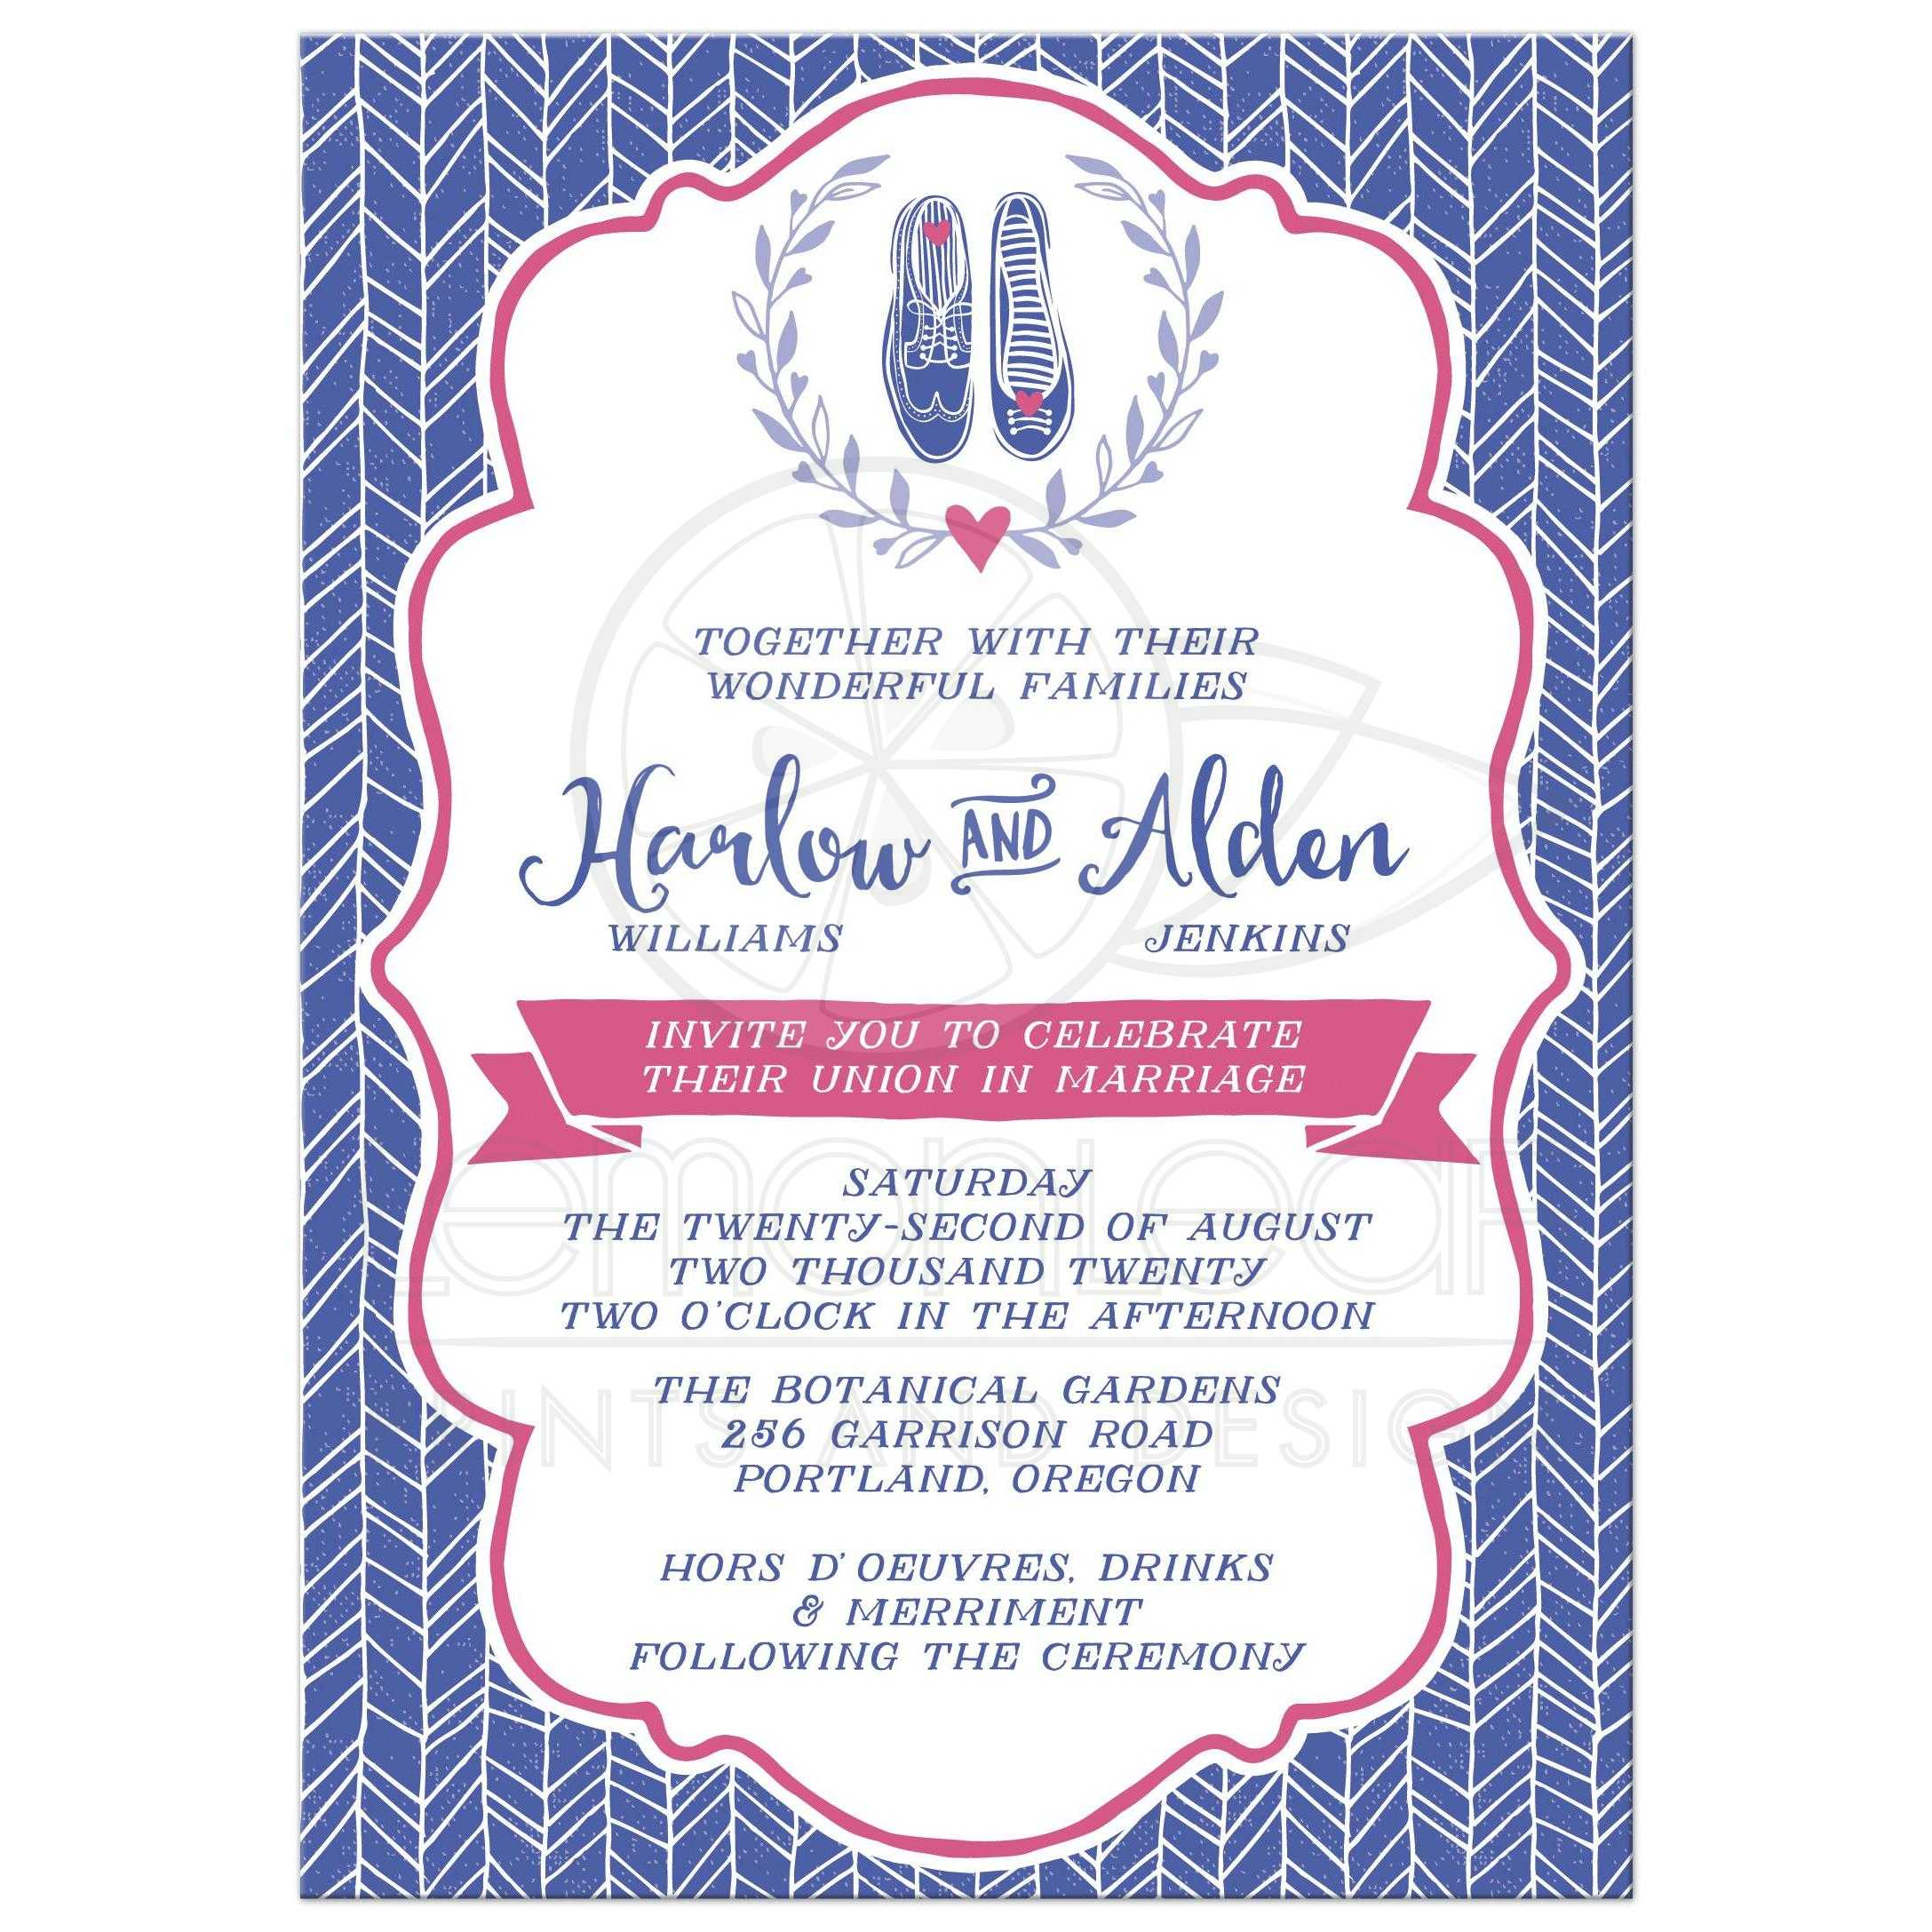 Wedding Invitations - Hipster Cute Shoes